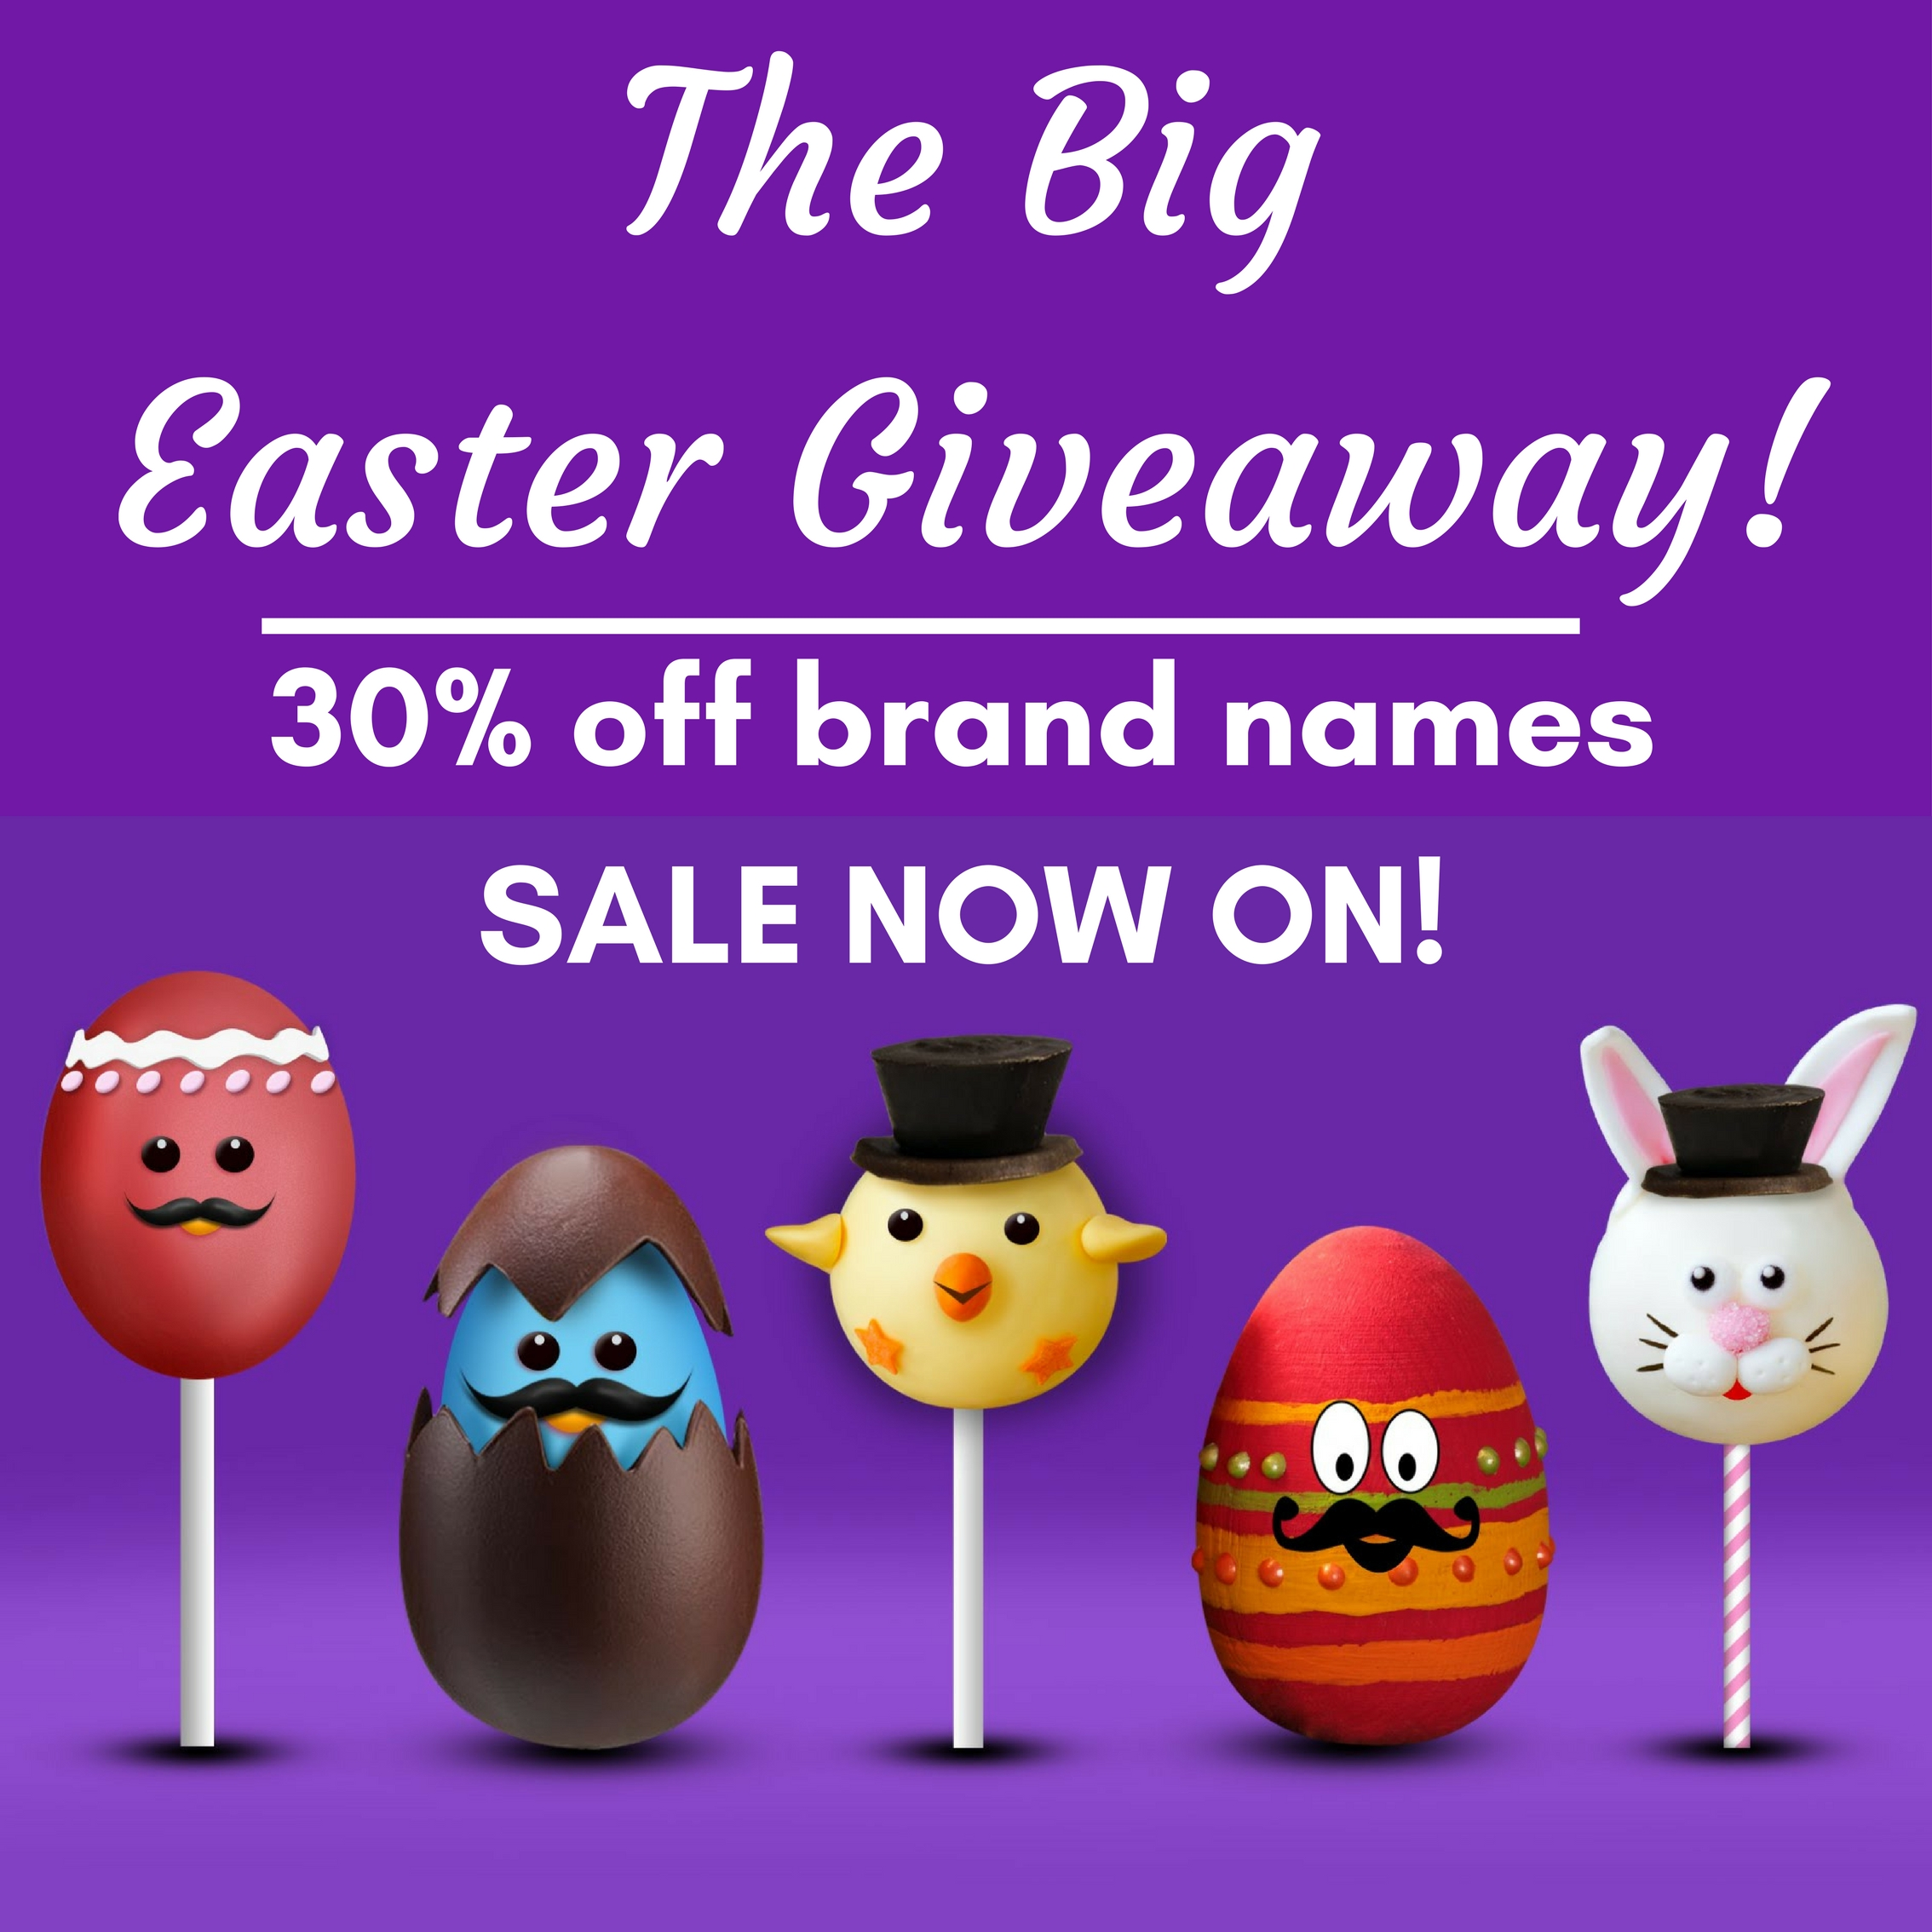 Corporate gifts promotional products gray house promotions corporate gifts products the big easter giveaway negle Images